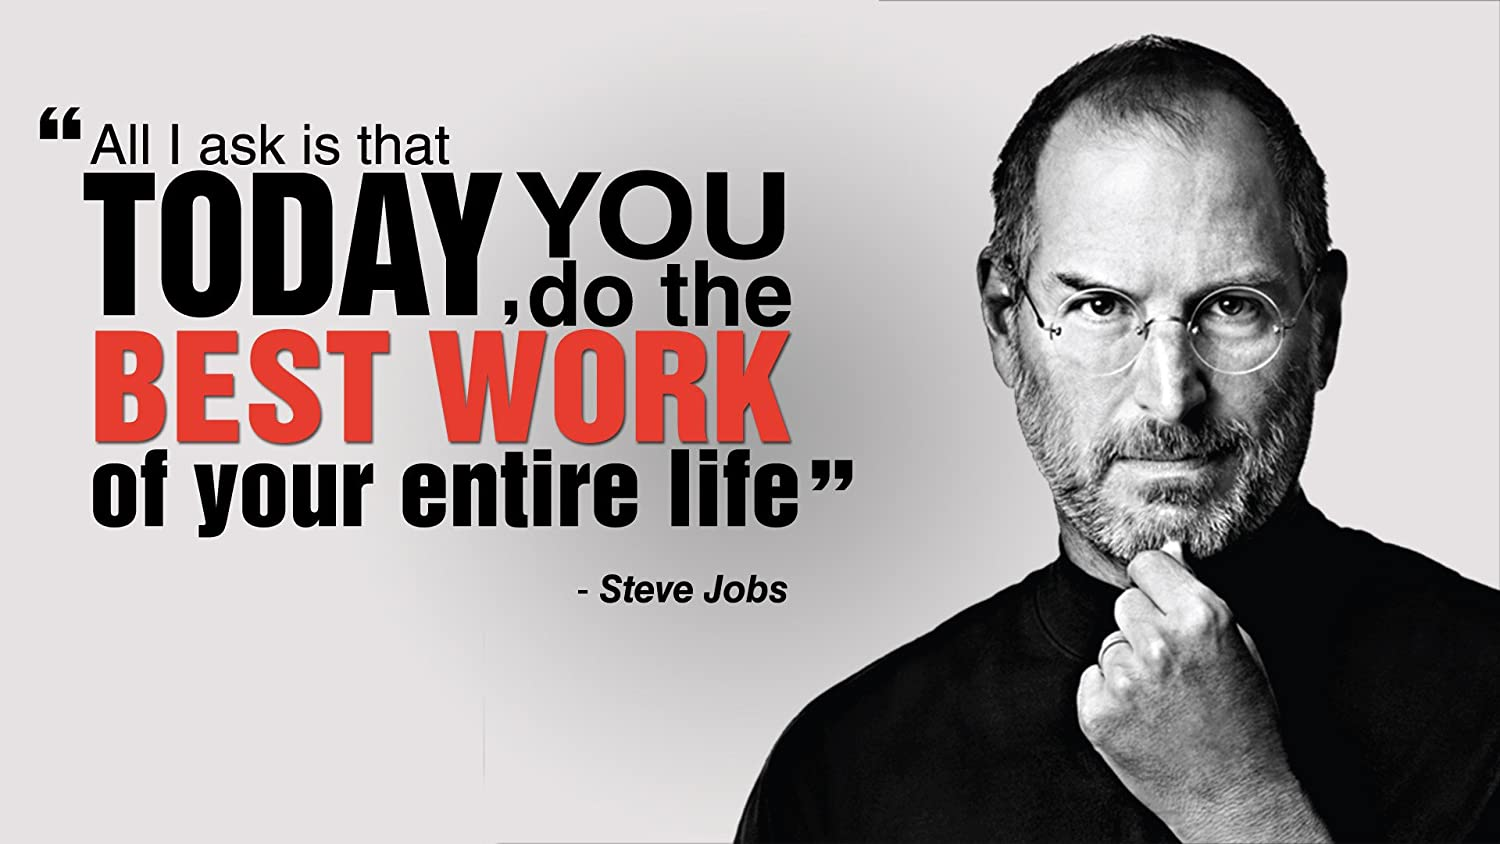 Love St Steve Jobs Quotes Today You Do The Best Work Of Your Entire Life Inspirational Motivational Special Paper Poster For Girls Poster For Boys